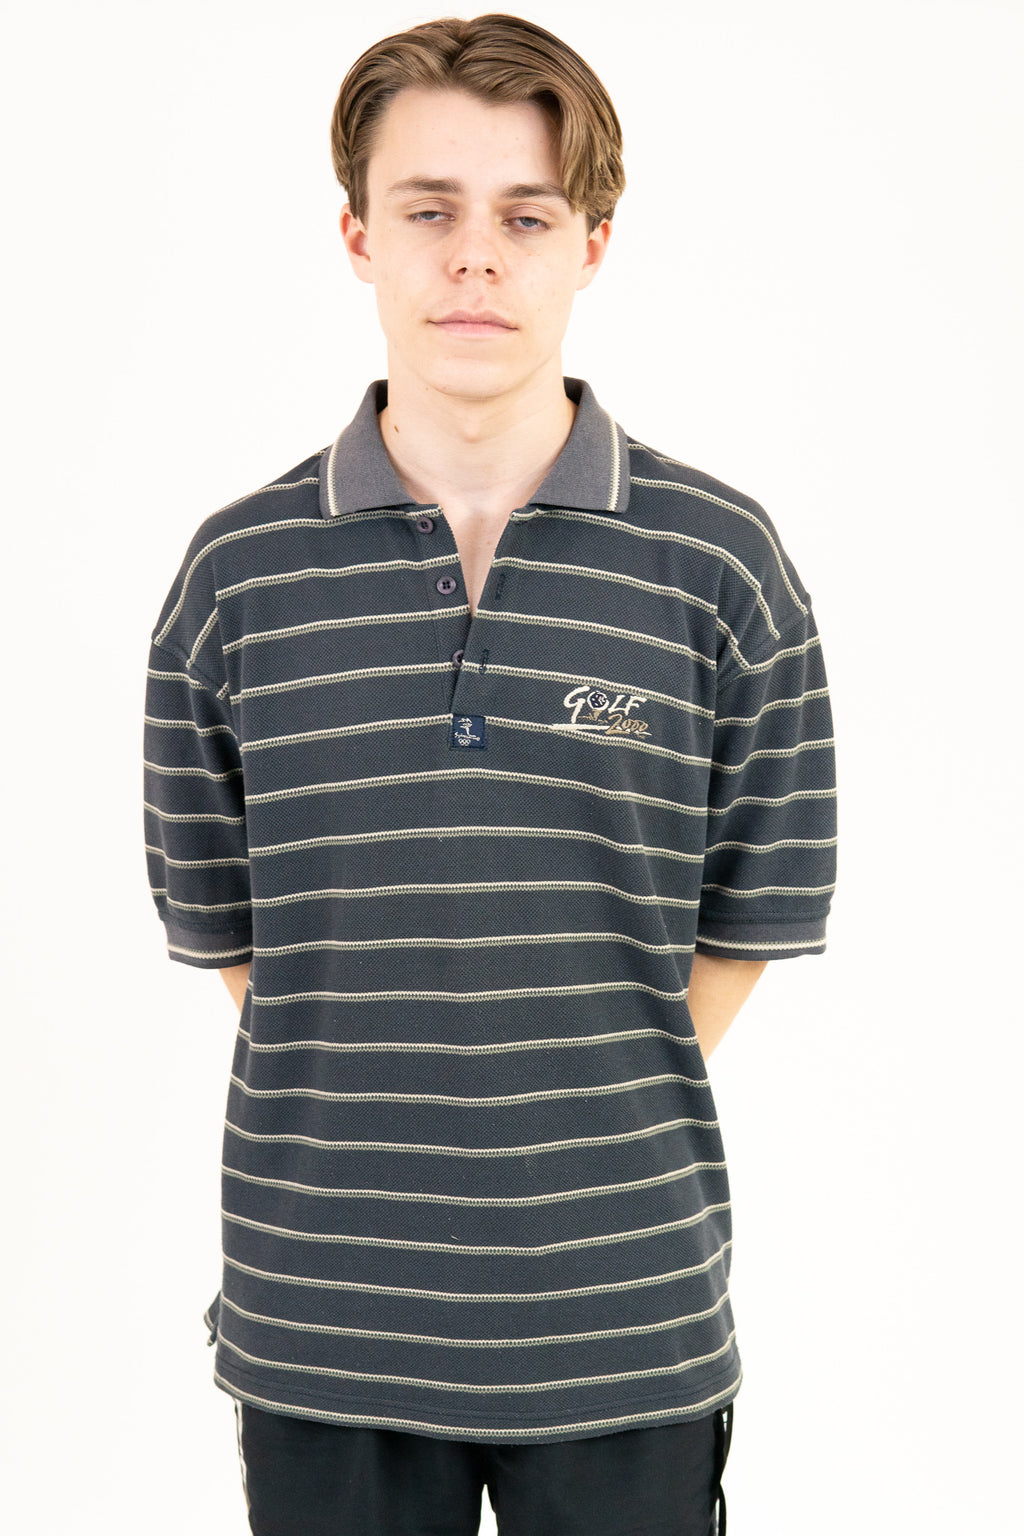 Vintage Sydney 2000 Striped Golf Polo / Size L